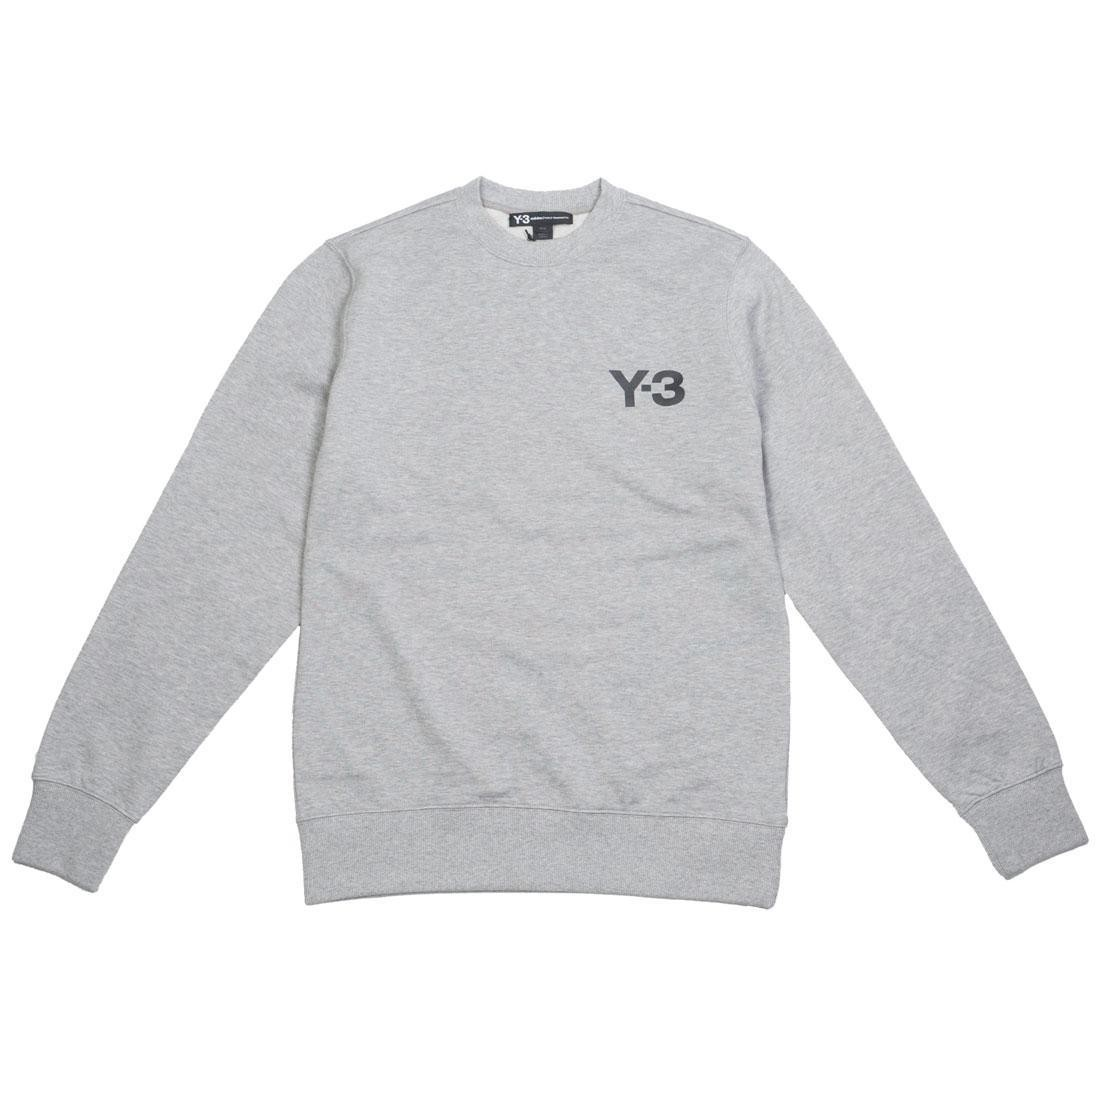 Adidas Y-3 Men Classic Logo Front Crew Sweater (gray / heather)